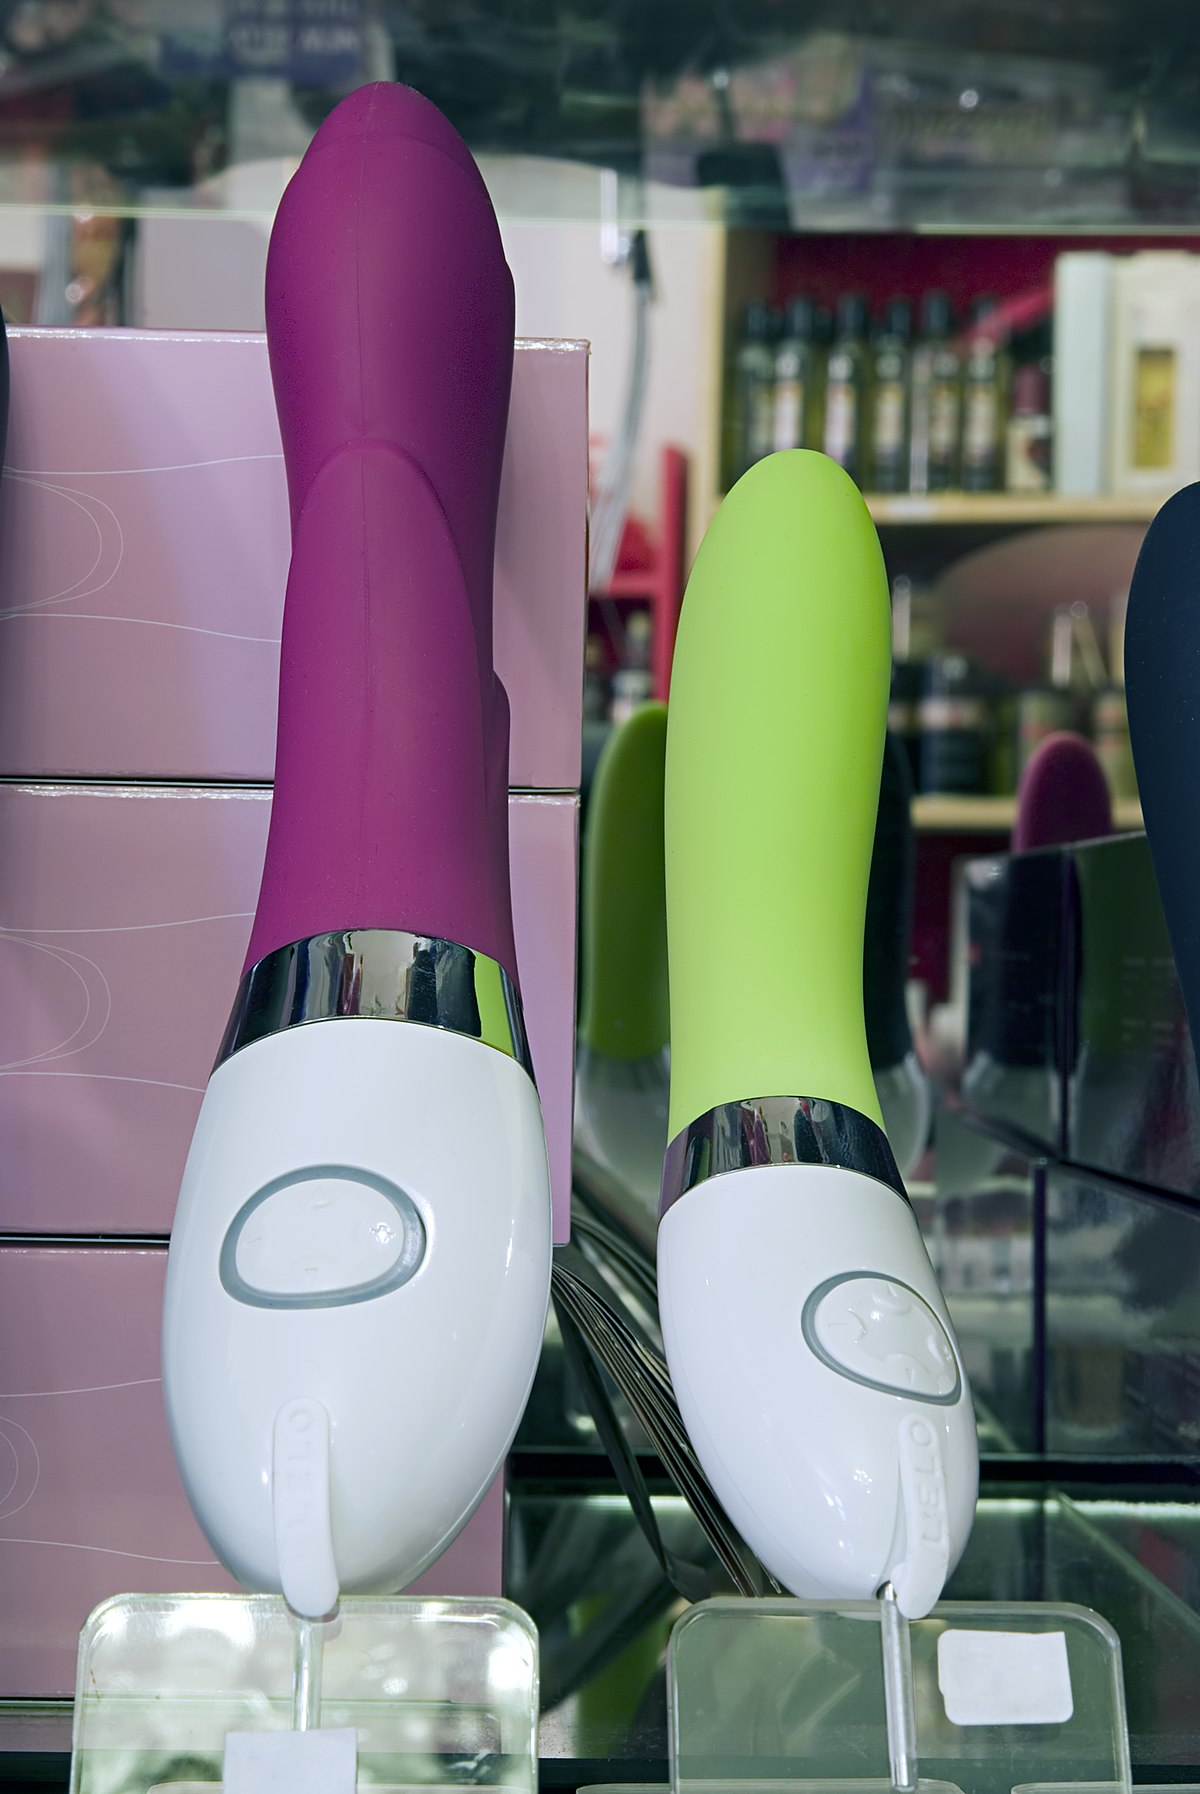 pussy Vibrator in